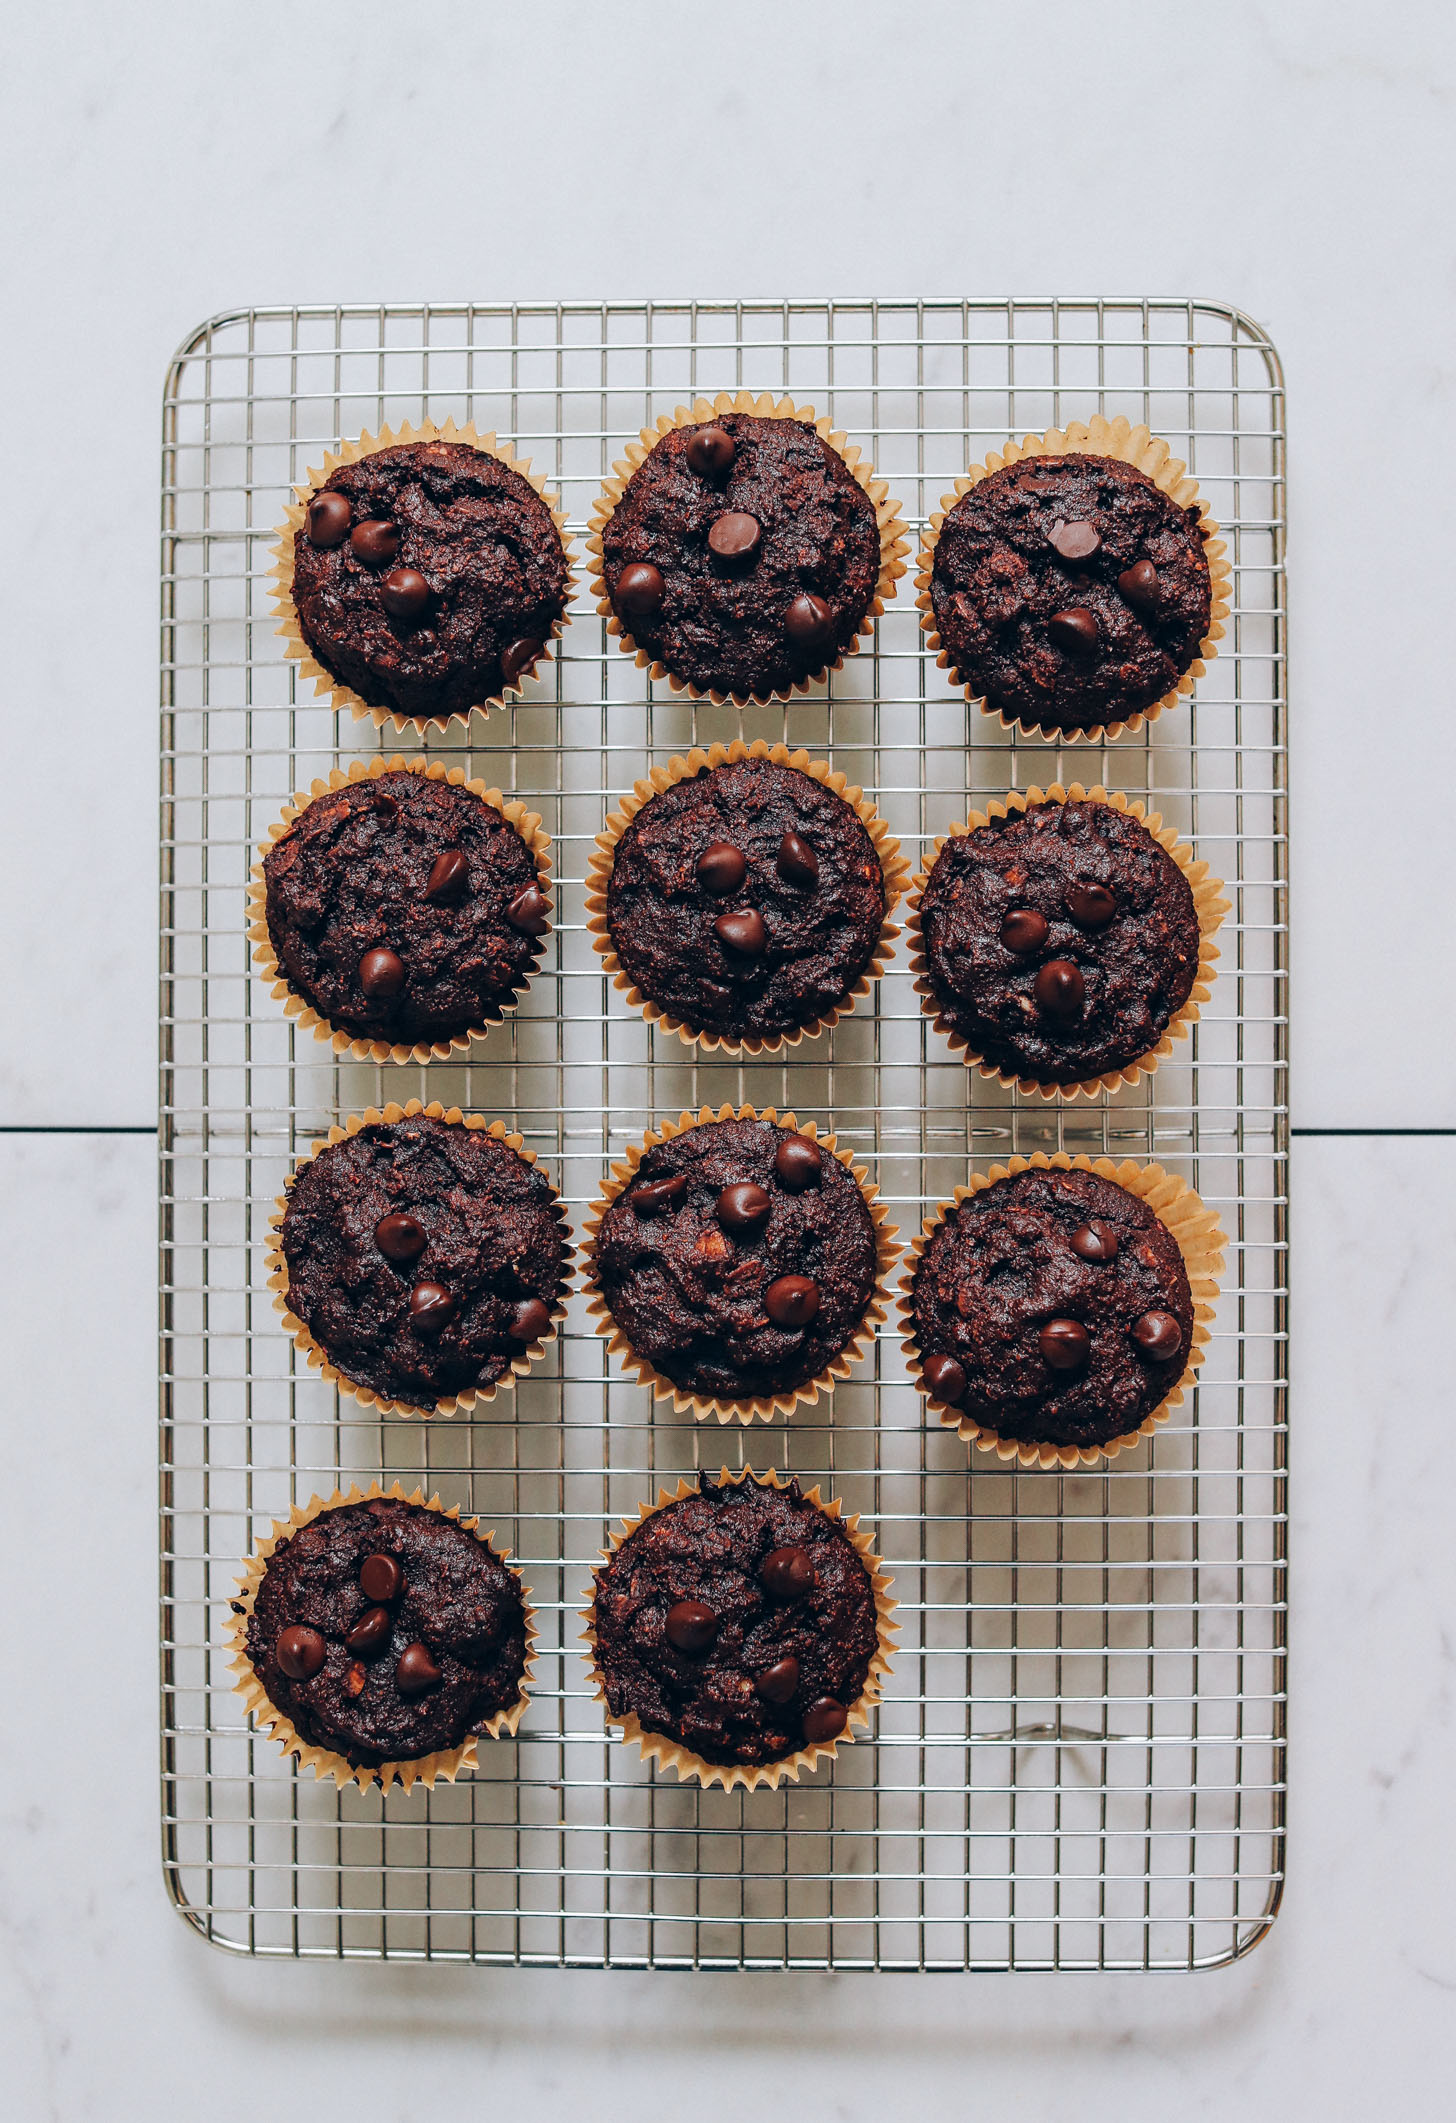 Cooling rack with a batch of our Fudgy Banana Chocolate Muffins recipe